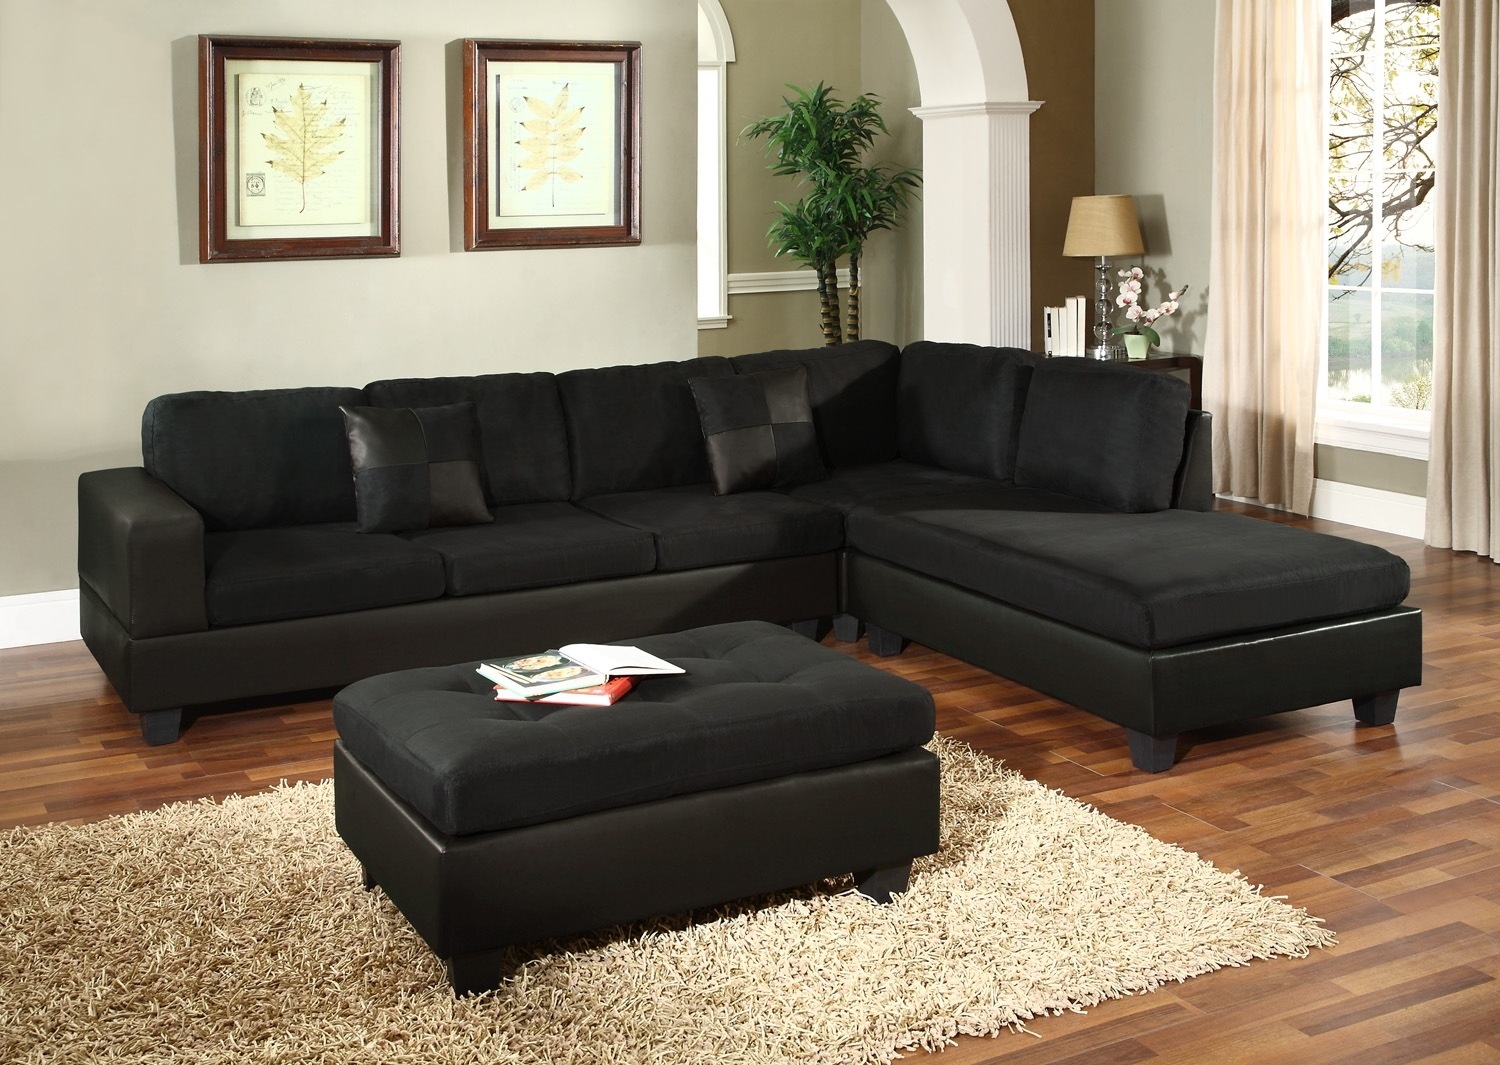 Eggplant Sectional Sofa Goodca Sofa For Eggplant Sectional Sofa (#8 of 12)